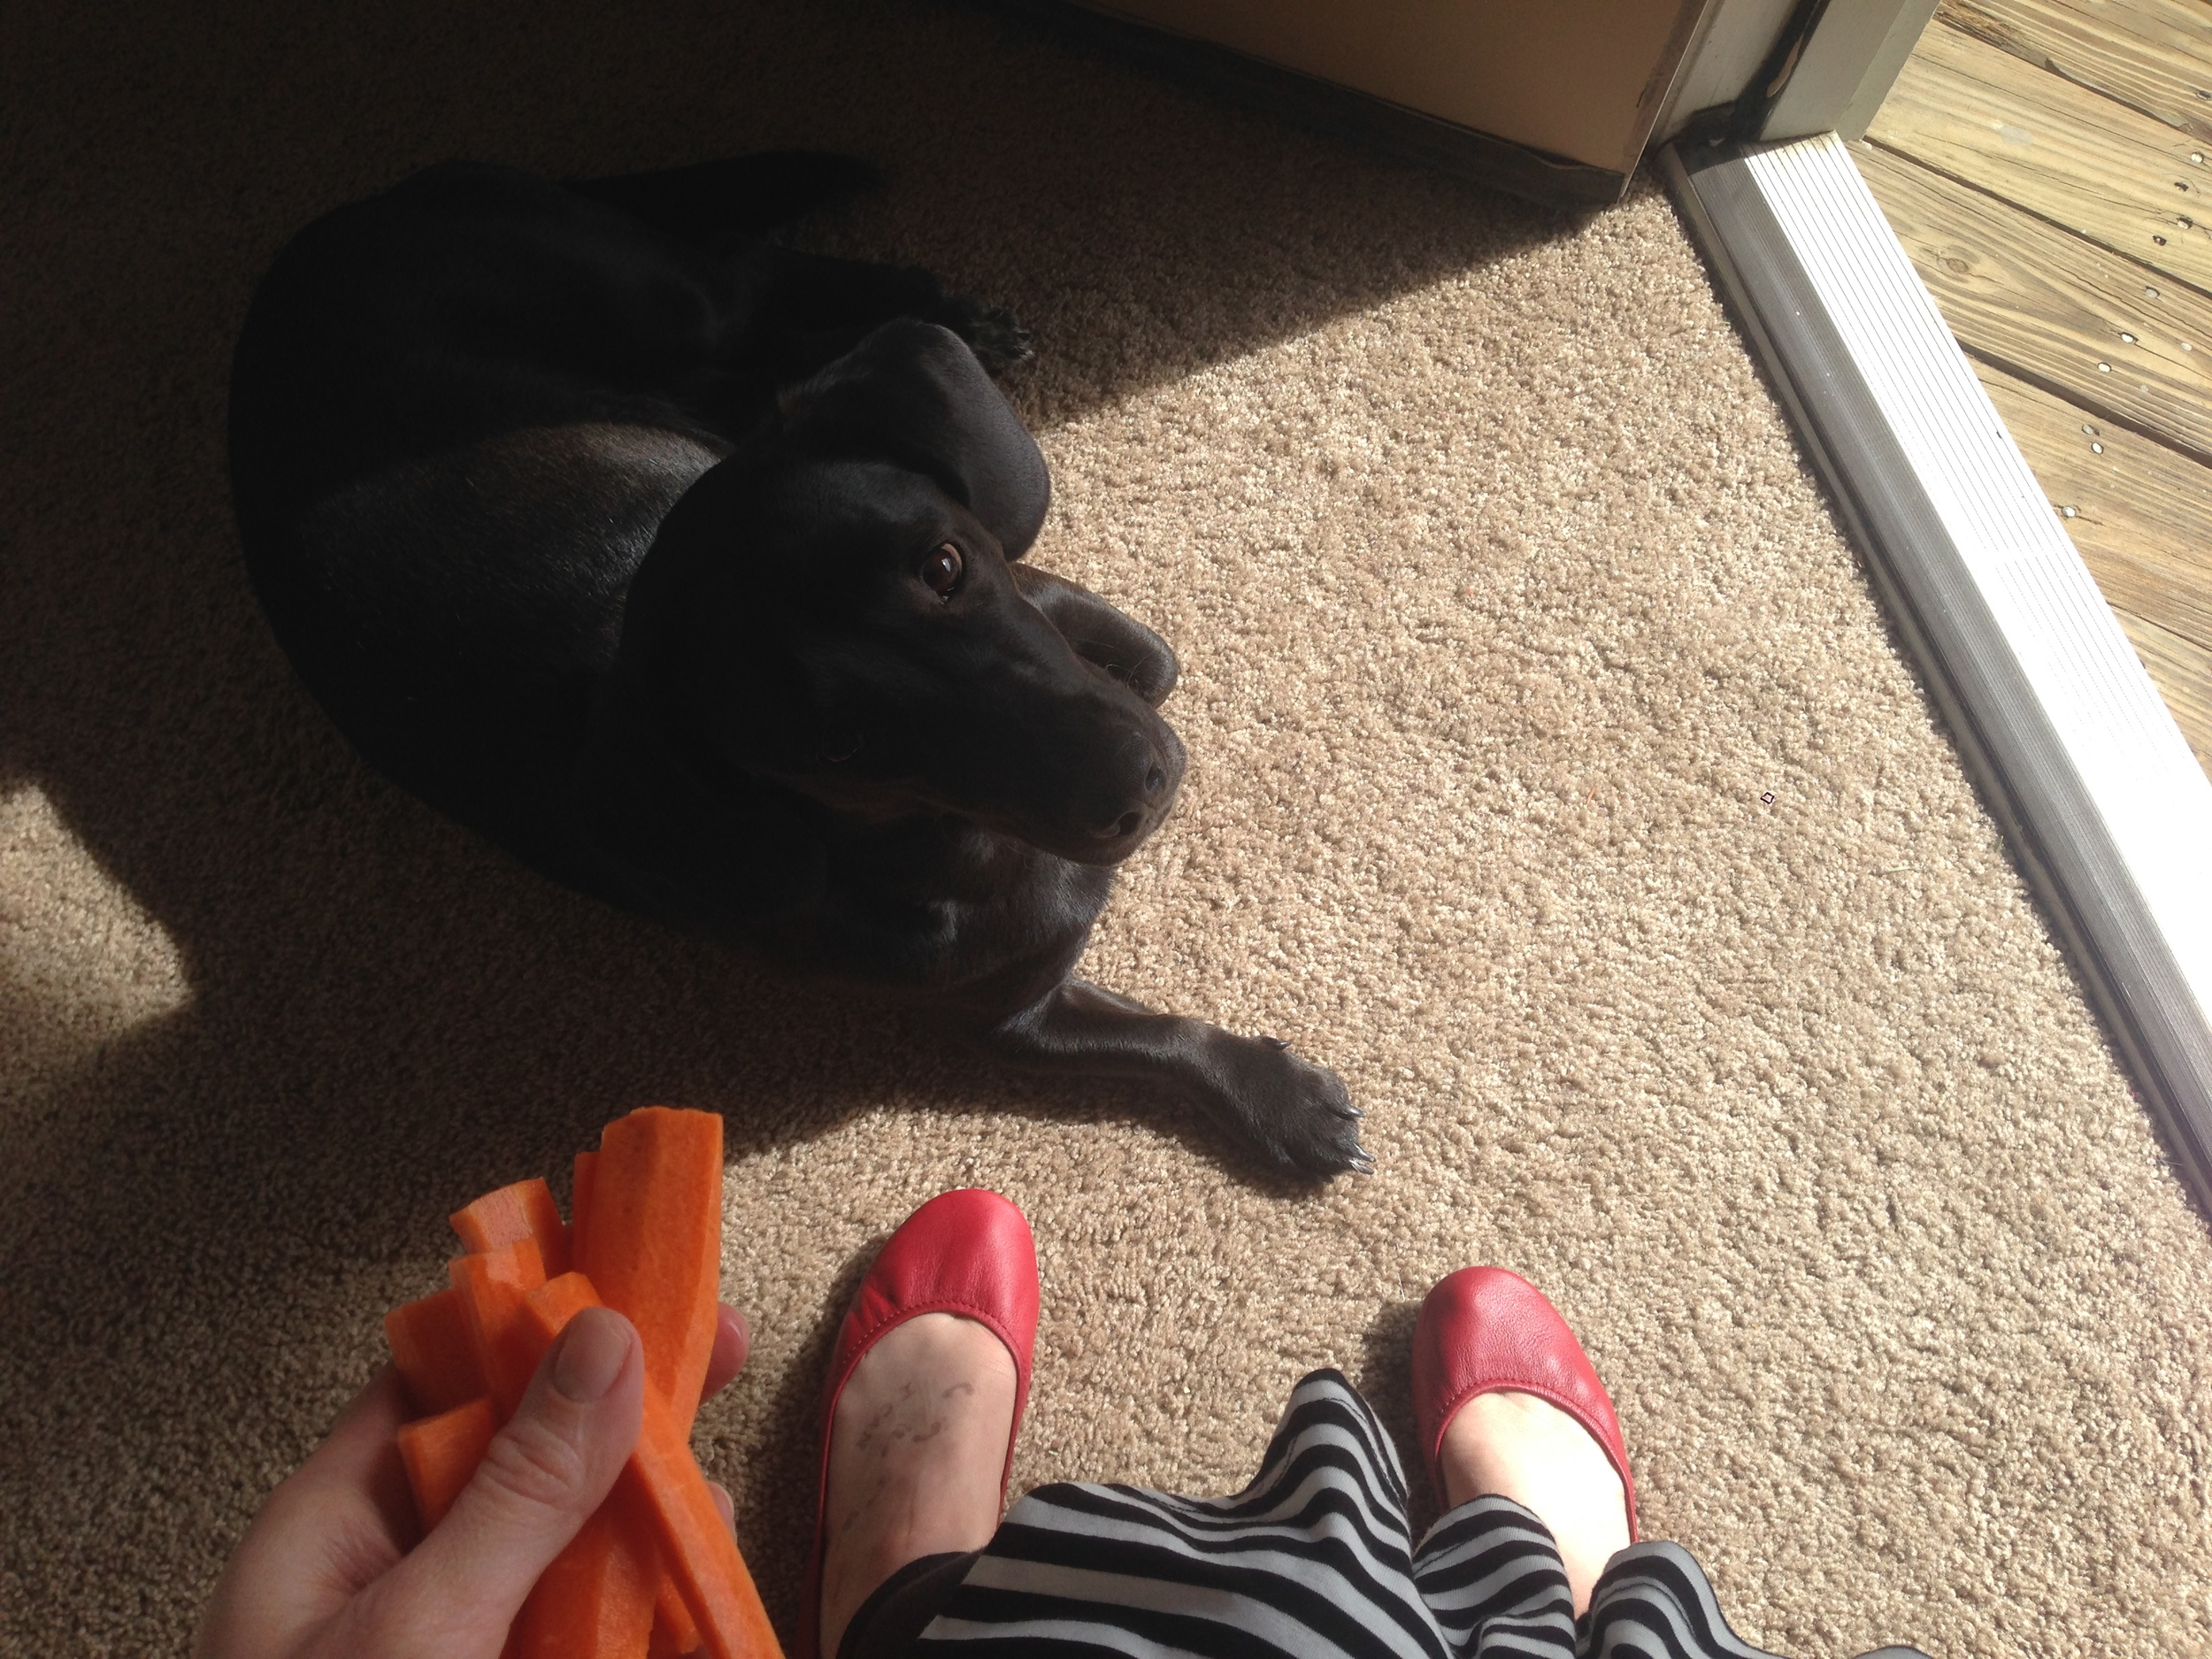 Post-walk carrot stick snack with the fur-monster.